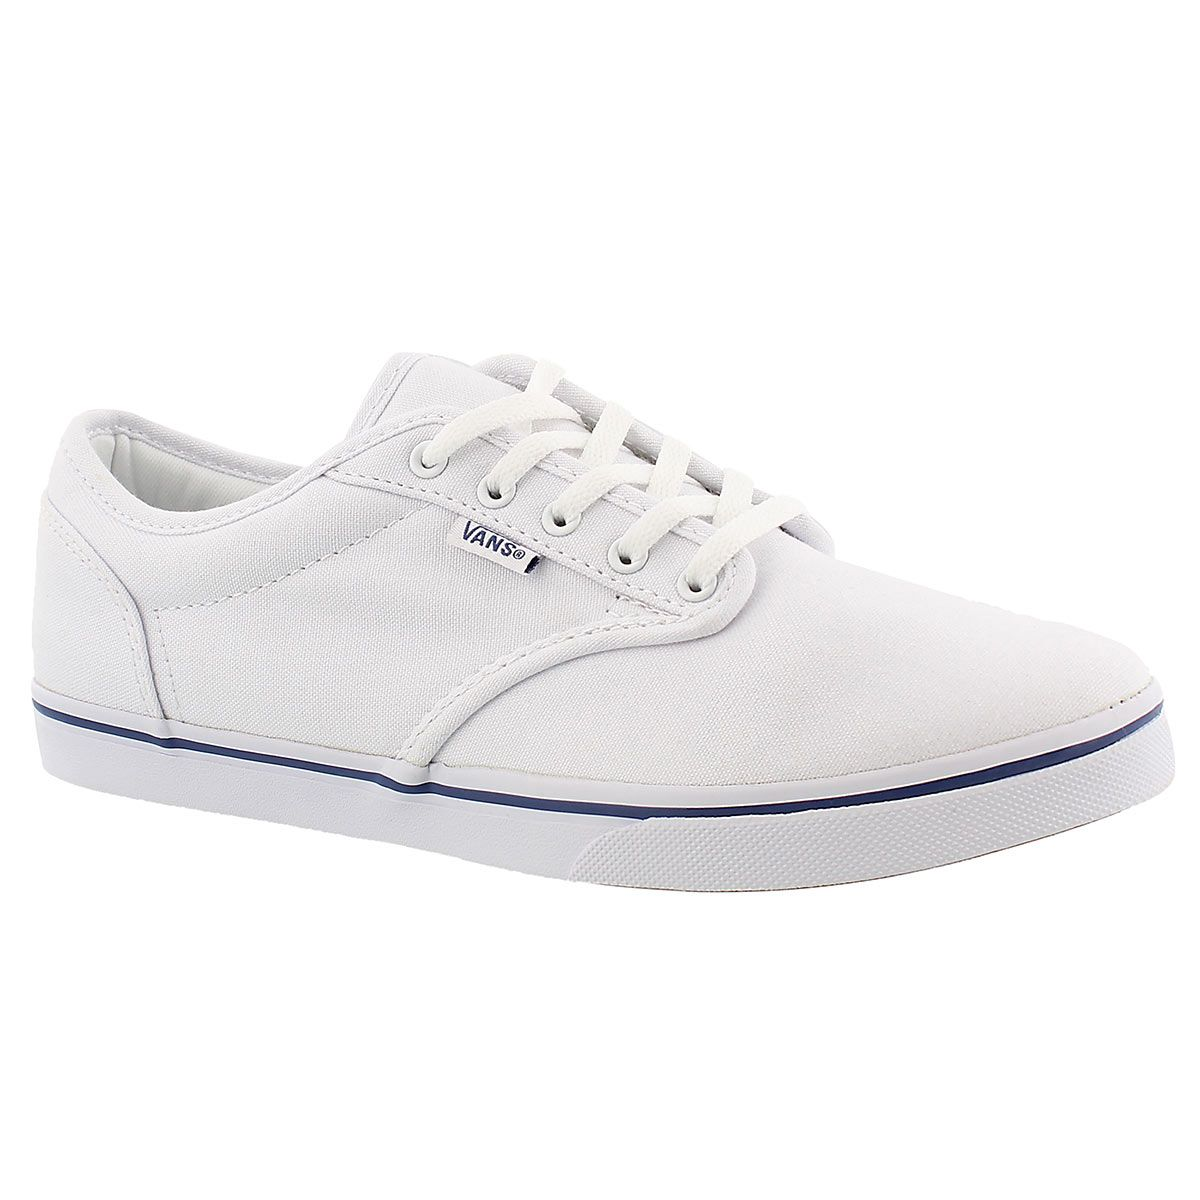 4a60b9b704 Vans Women s ATWOOD LOW white lace up sneakers VN000ZUO1XE